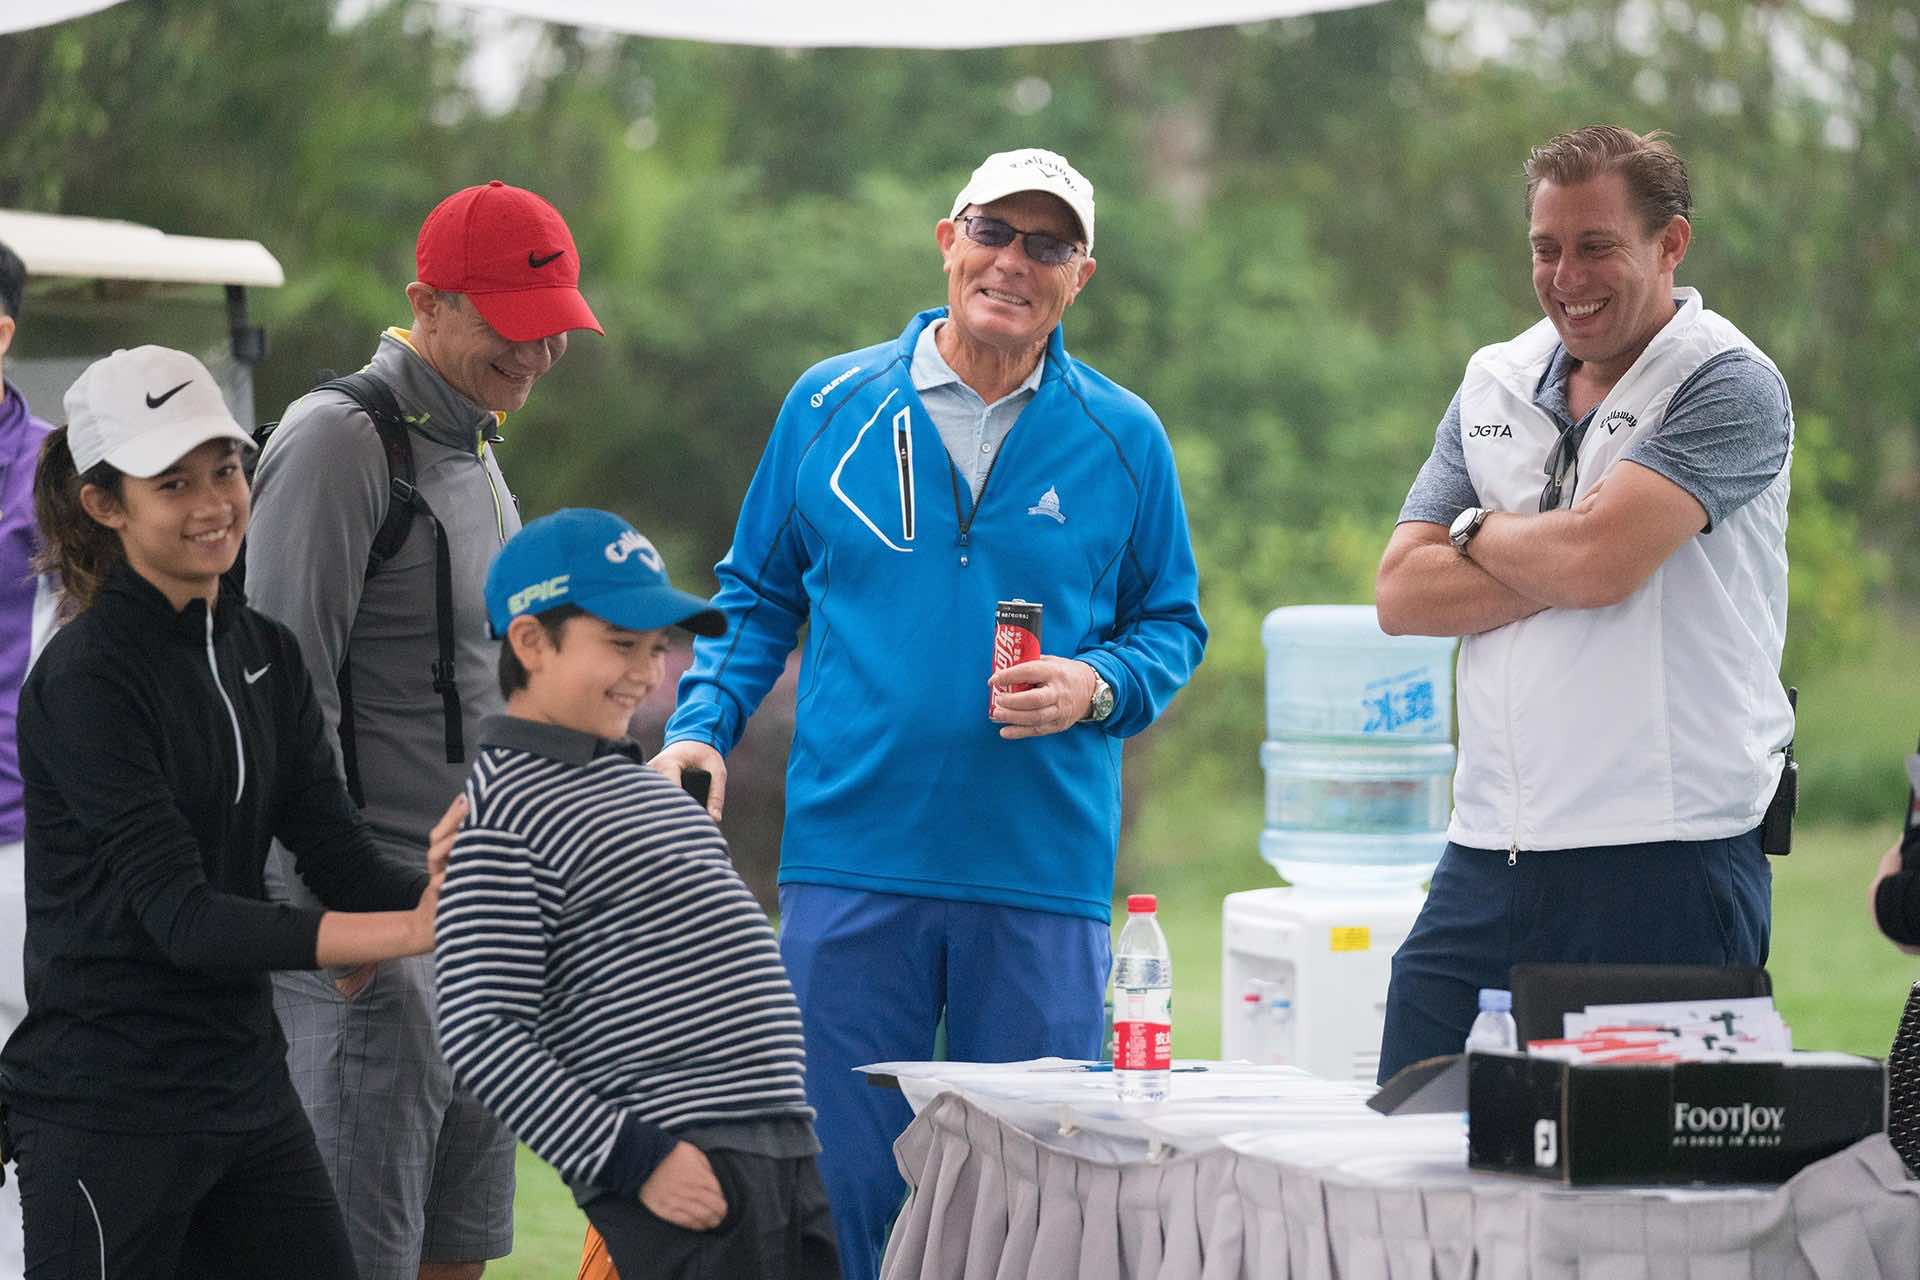 Eila Galitsky and Family at the fourth event on the 2018-2019 Tournament Schedule, The Southern Junior